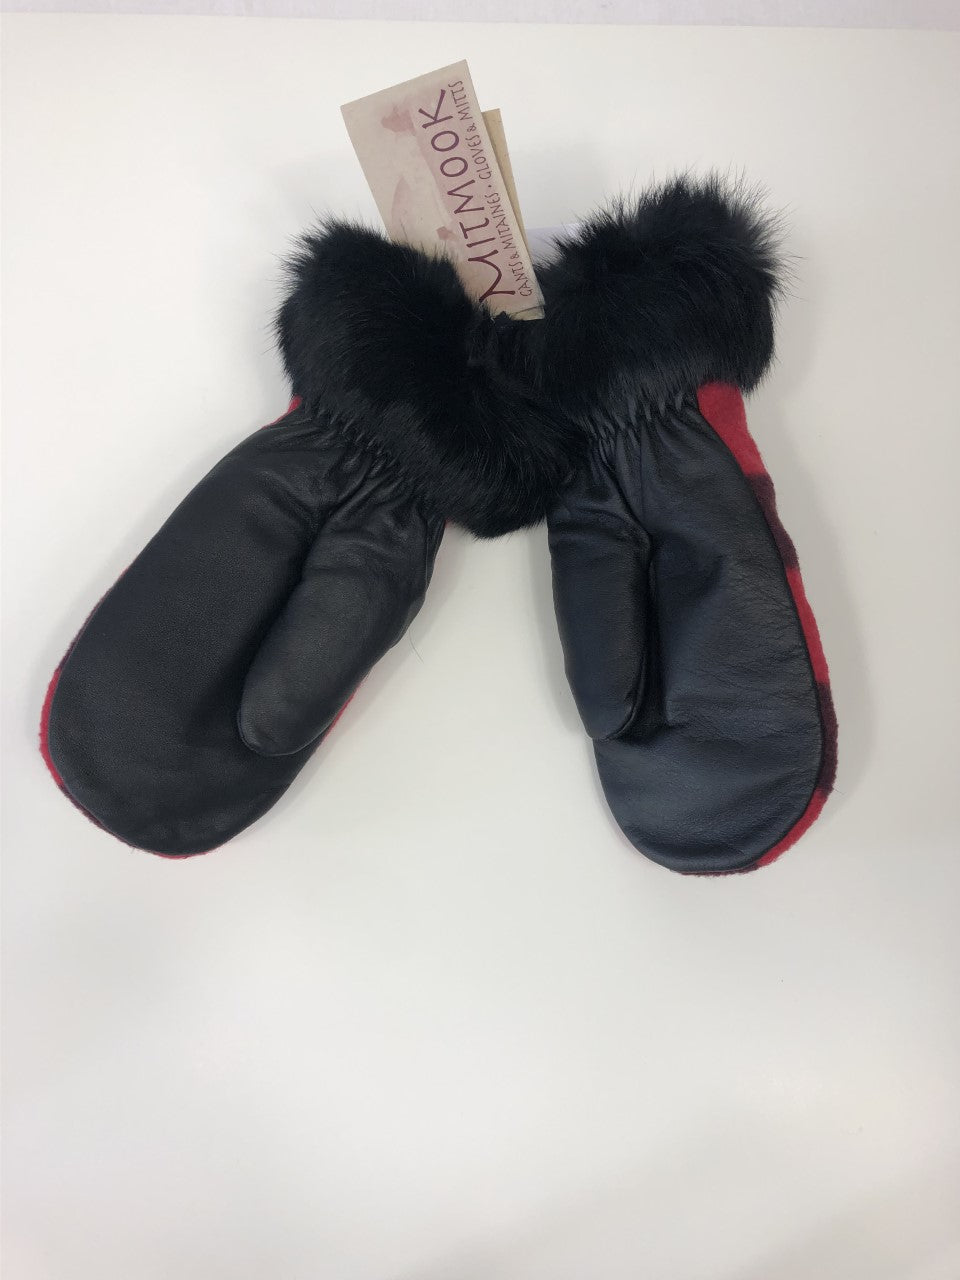 Black Leather & Polar Mittens with Black Rabbit trim